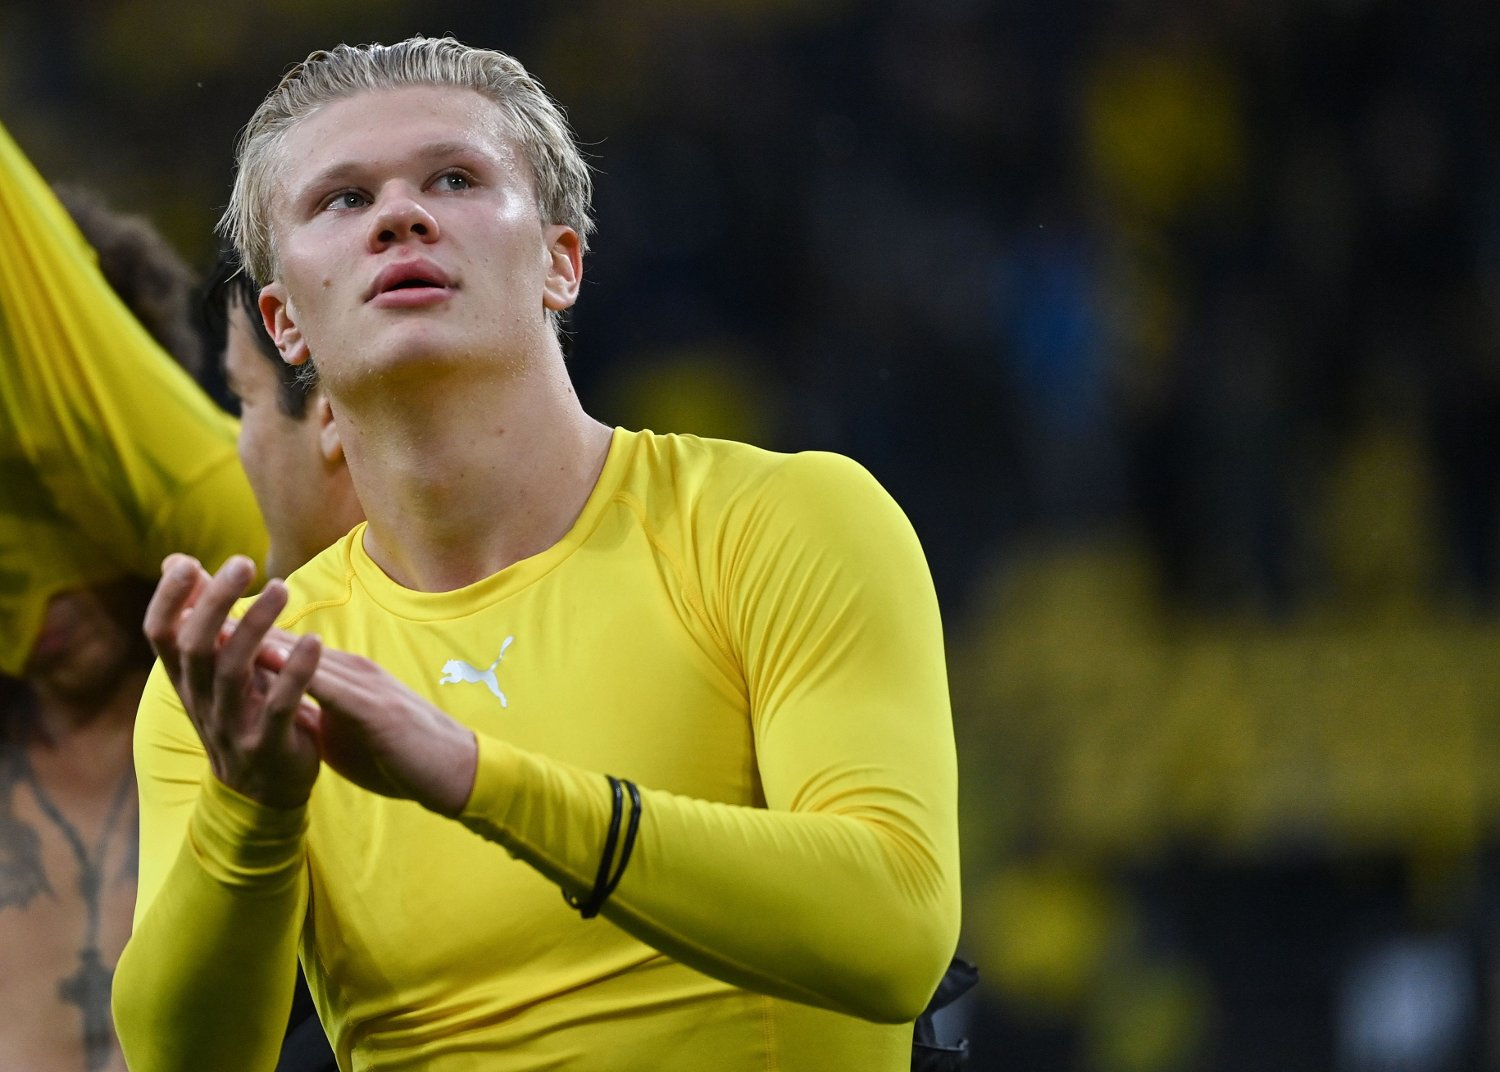 Dortmund's Norwegian forward Erling Braut Haaland celebrates after the German first division Bundesliga football match Borussia Dortmund vs SC Freiburg in Dortmund, on October 3, 2020. / DFL REGULATIONS PROHIBIT ANY USE OF PHOTOGRAPHS AS IMAGE SEQUENCES AND/OR QUASI-VIDEO